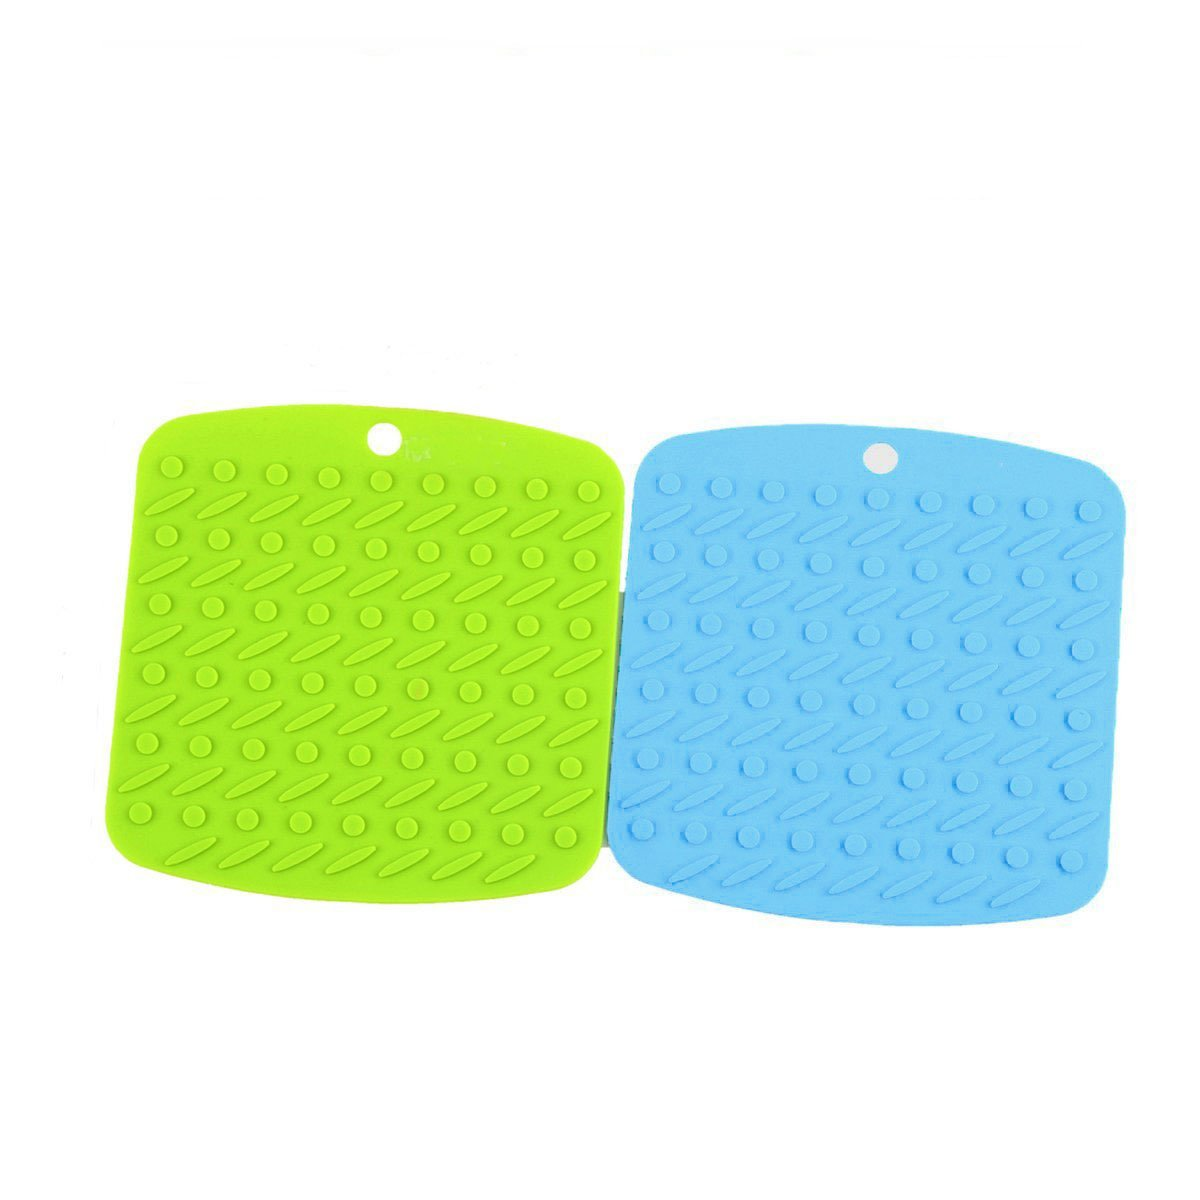 Silicone Pot Holders, Silicone Drying Mat, Trivets, Jar Openers, Non Slip Heat Resistant Hot Pads, Heat Resistant to 450 °F, 2 PCS